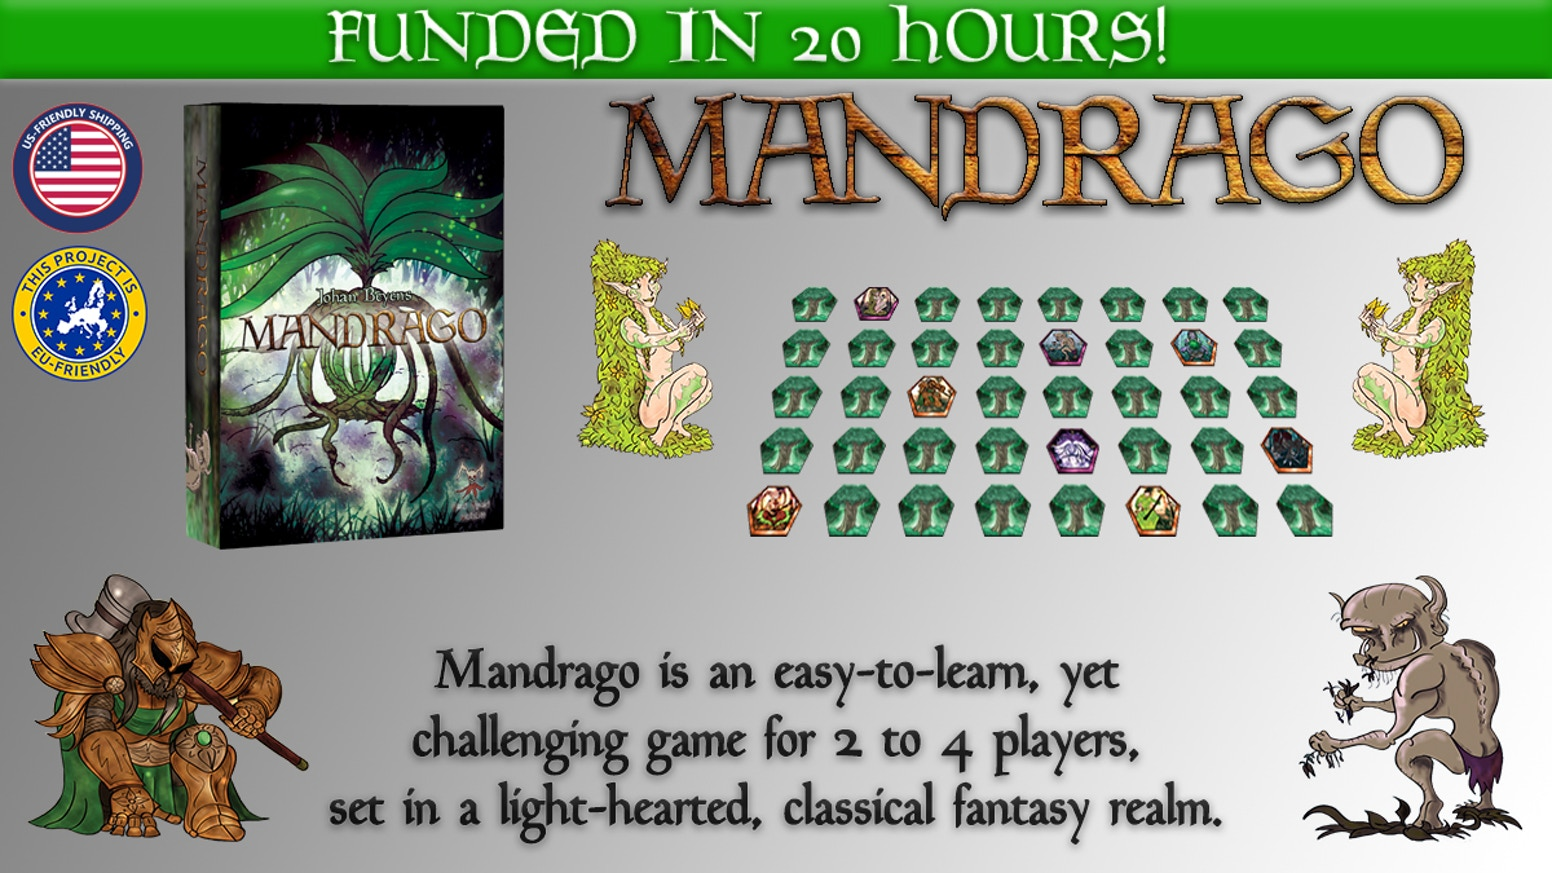 Mandrago is an easy-to-learn, yet challenging game for 2 to 4 players, set in a light-hearted, classical fantasy realm. EU/US Friendly.